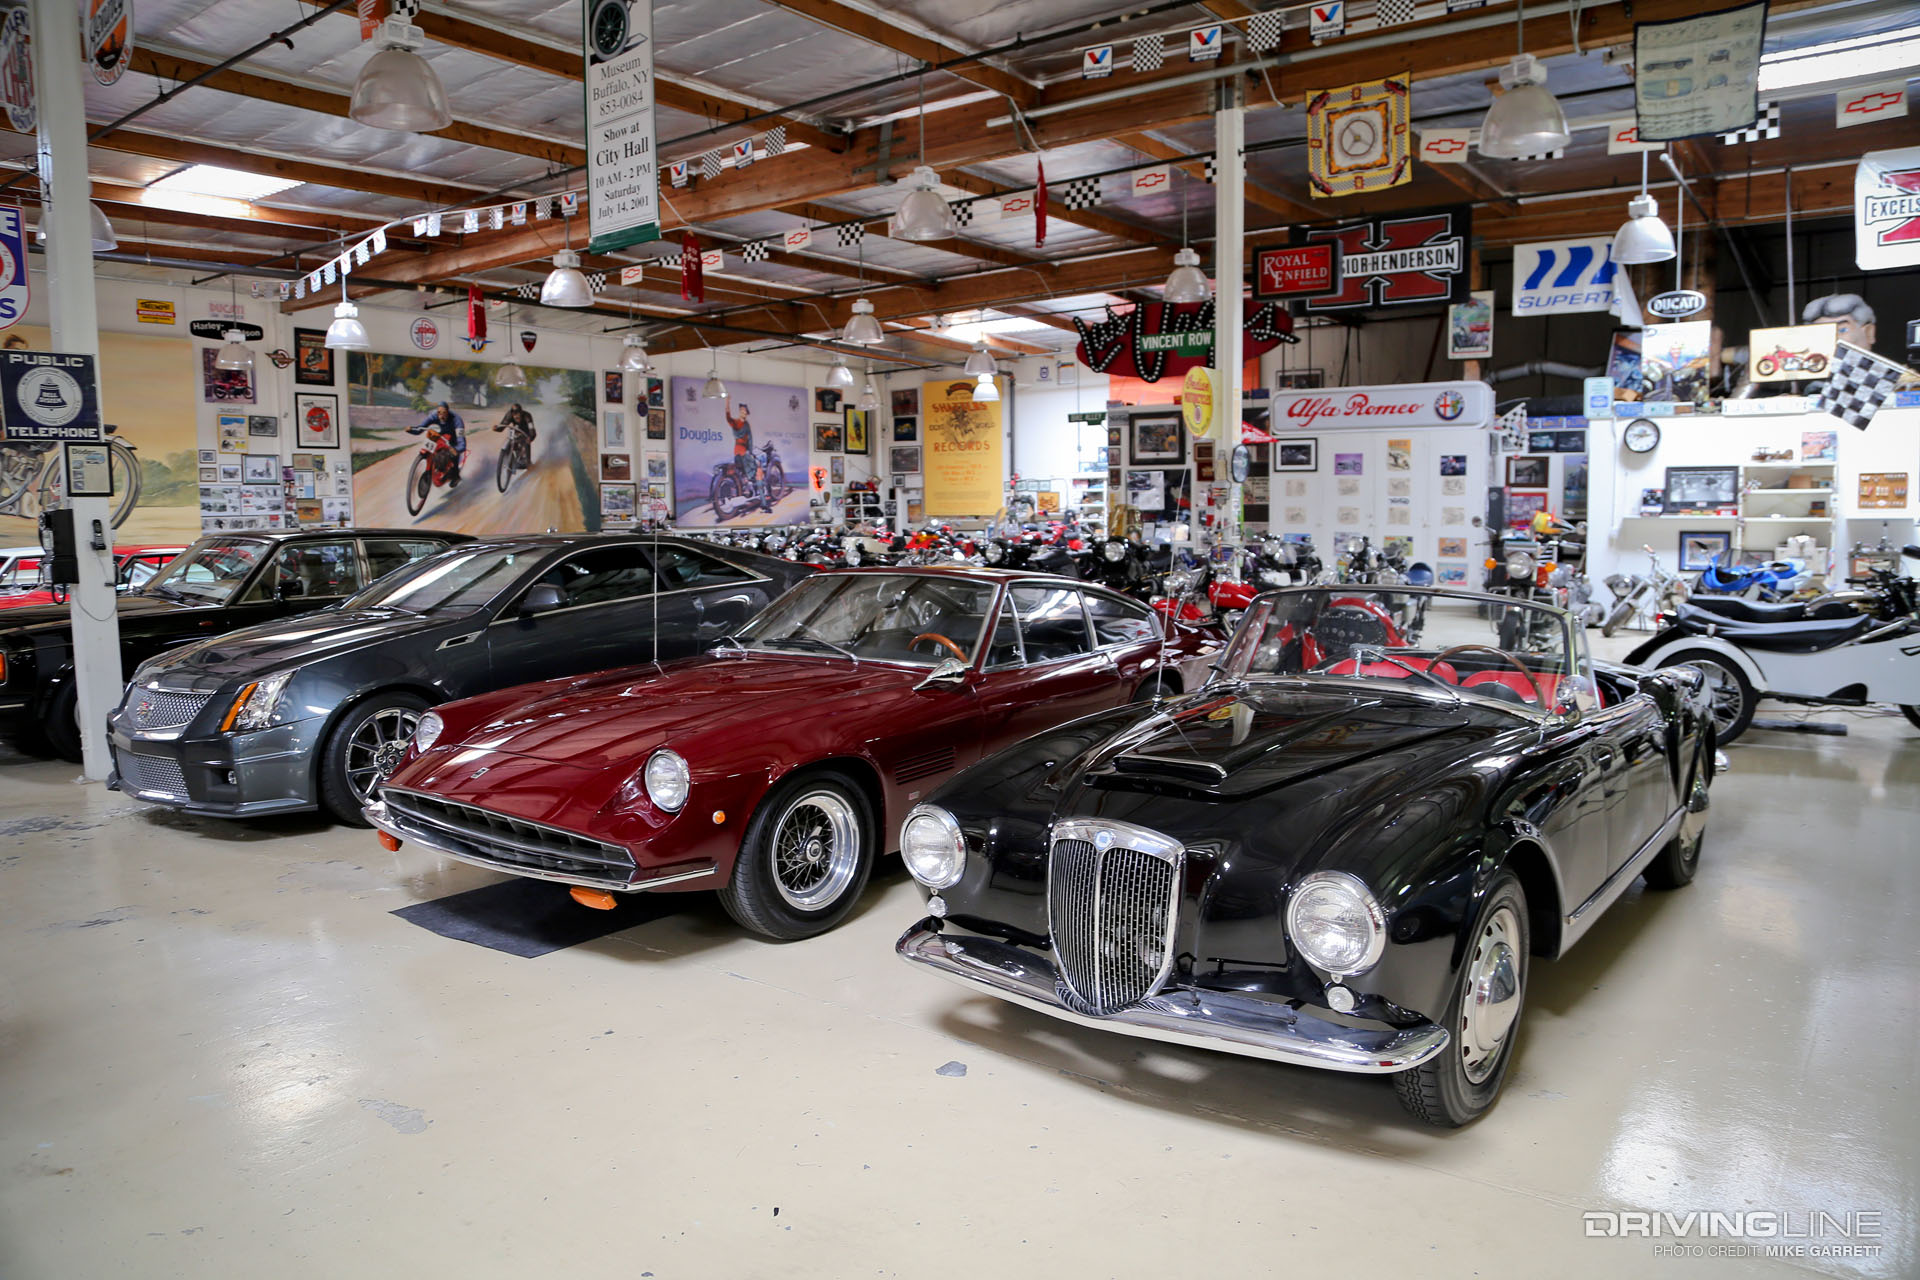 7 things that may surprise you if you visit jay leno 39 s garage drivingline. Black Bedroom Furniture Sets. Home Design Ideas